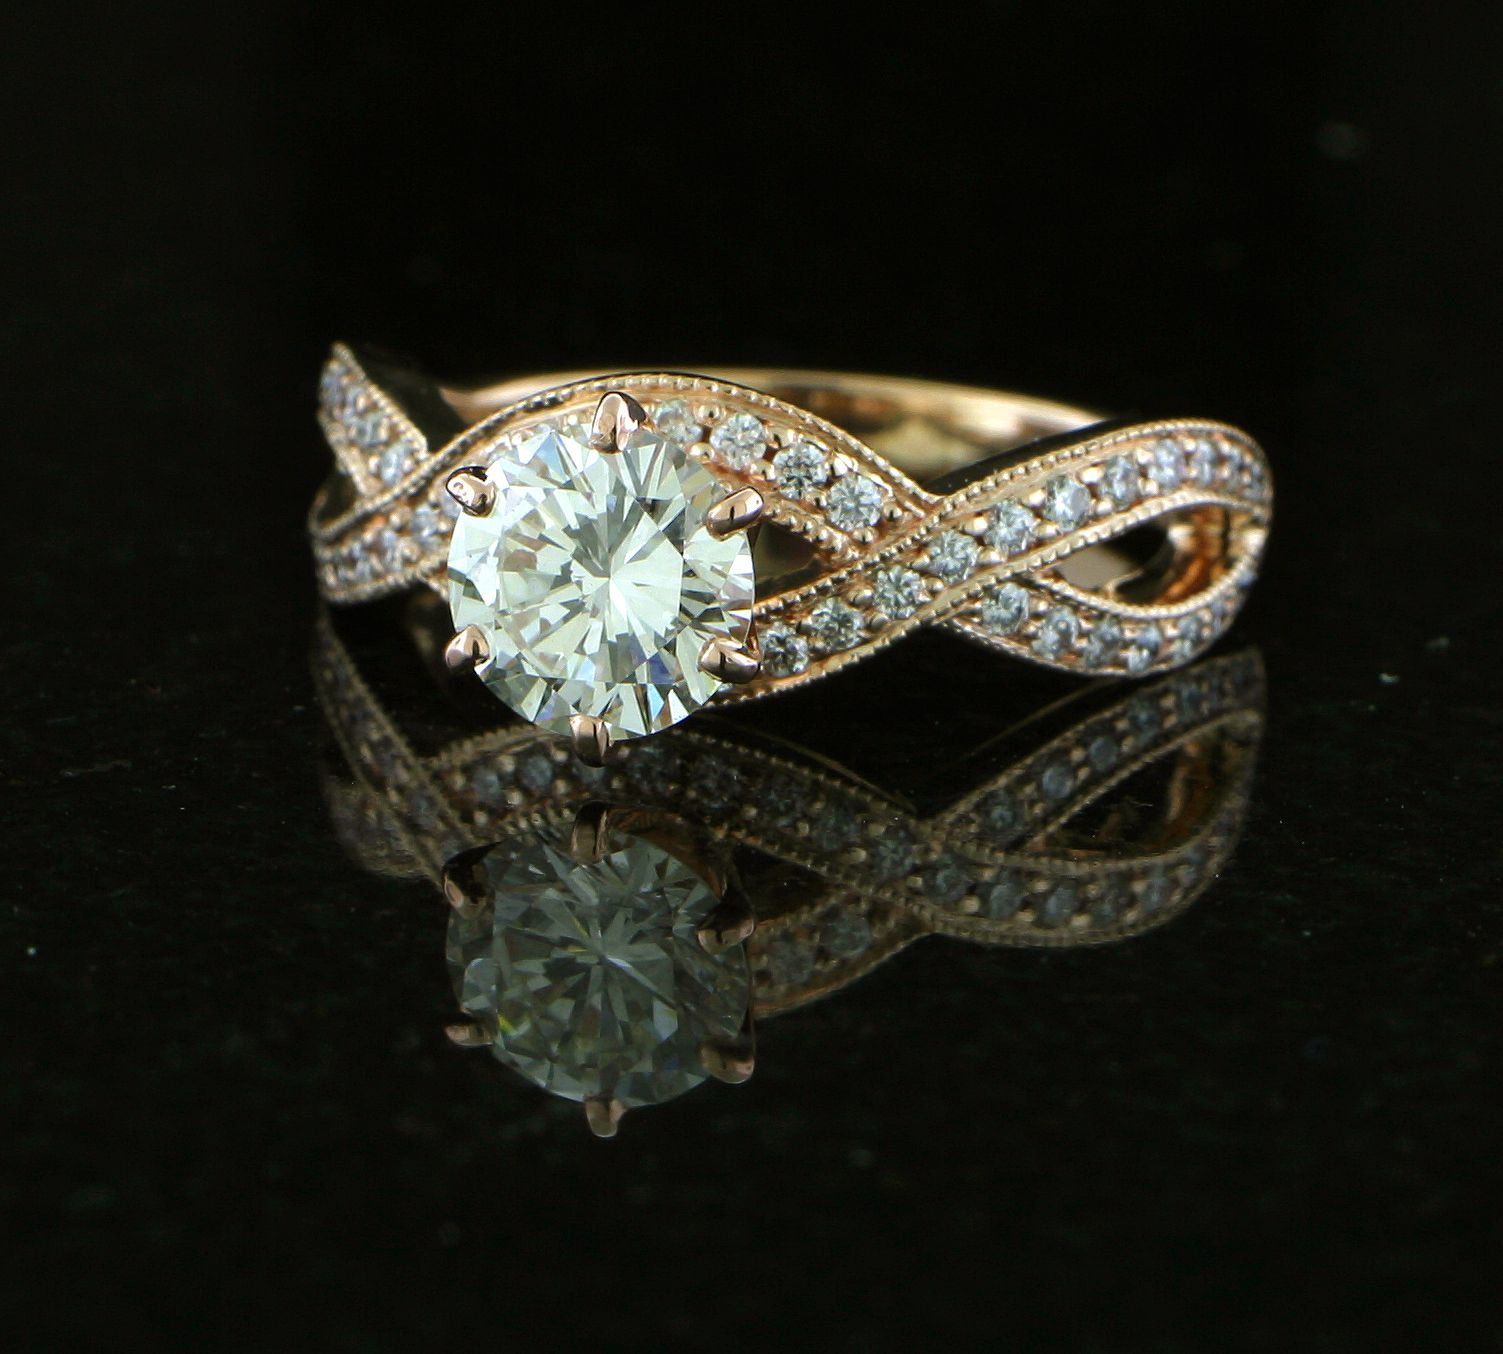 This beautiful 14k rose gold ring is encrusted with